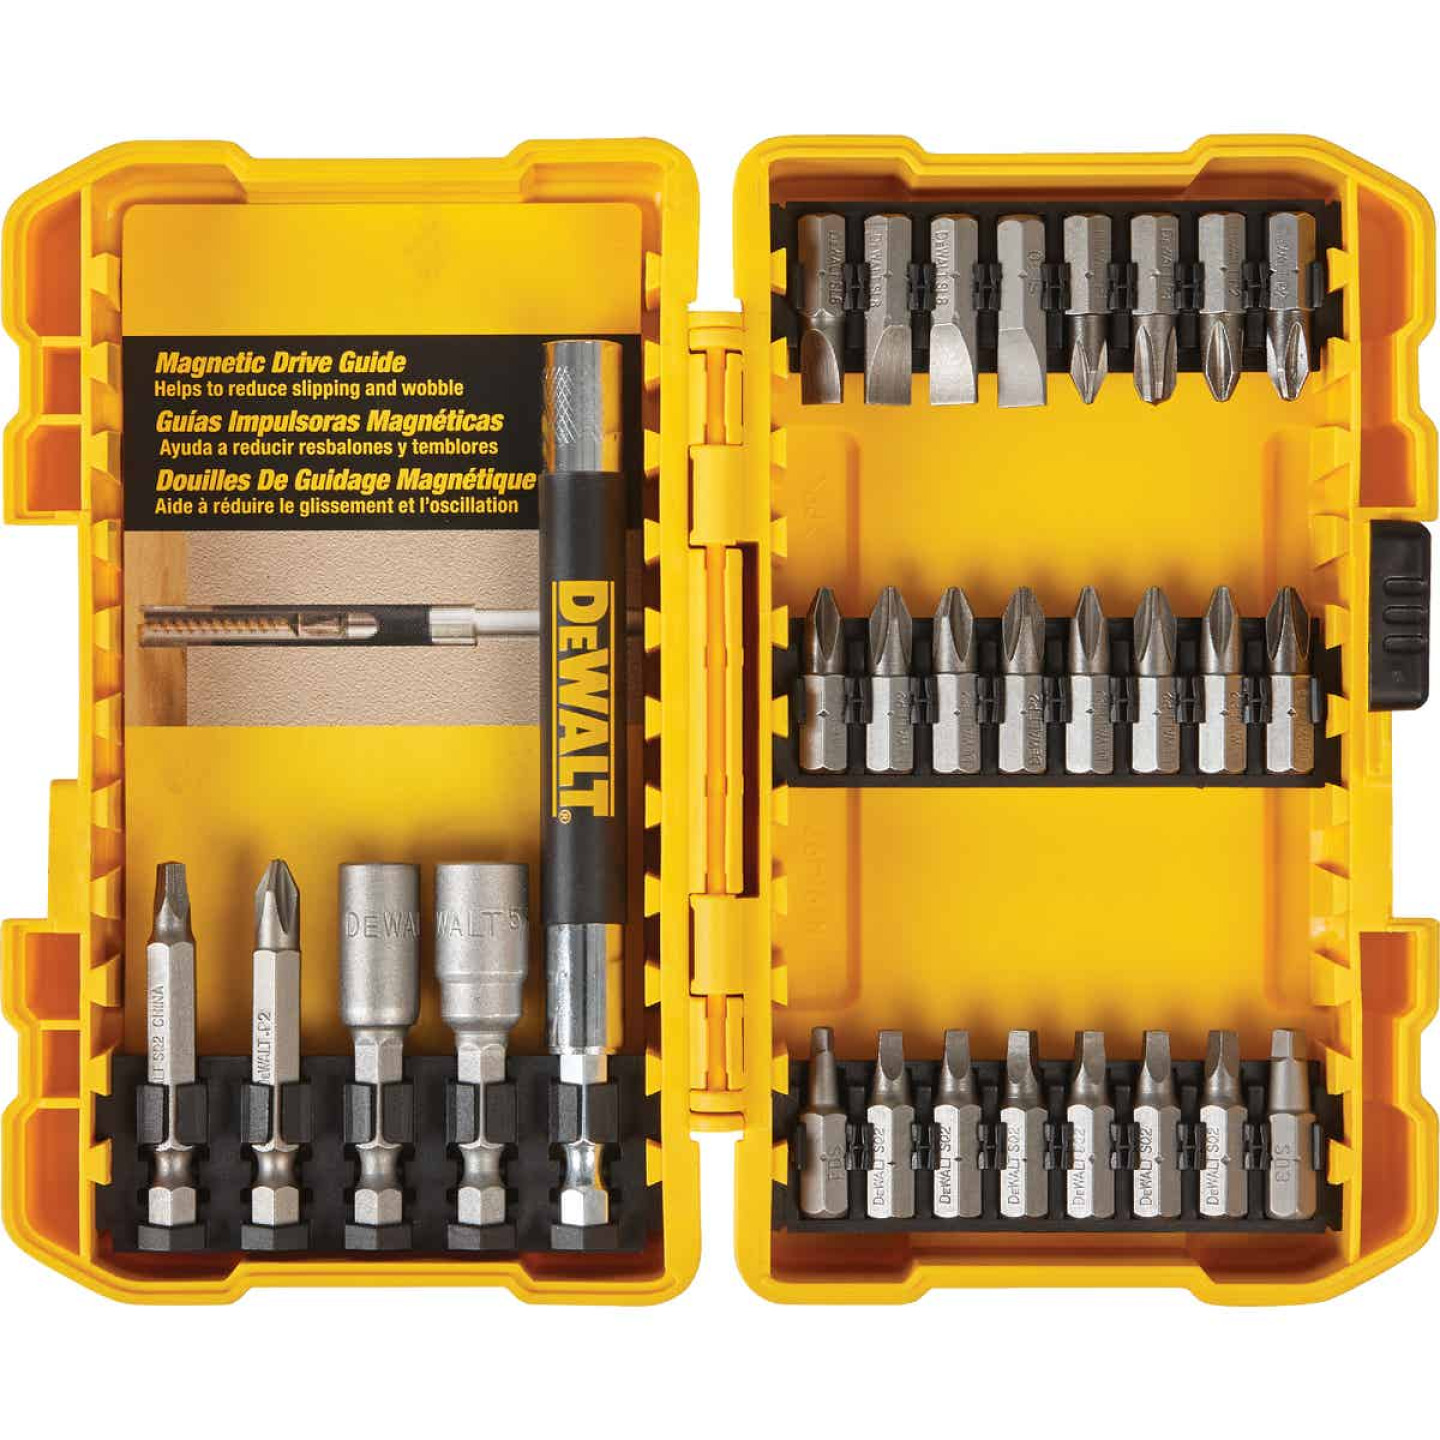 DeWalt 29-Piece Screwdriver Bit Set Image 1